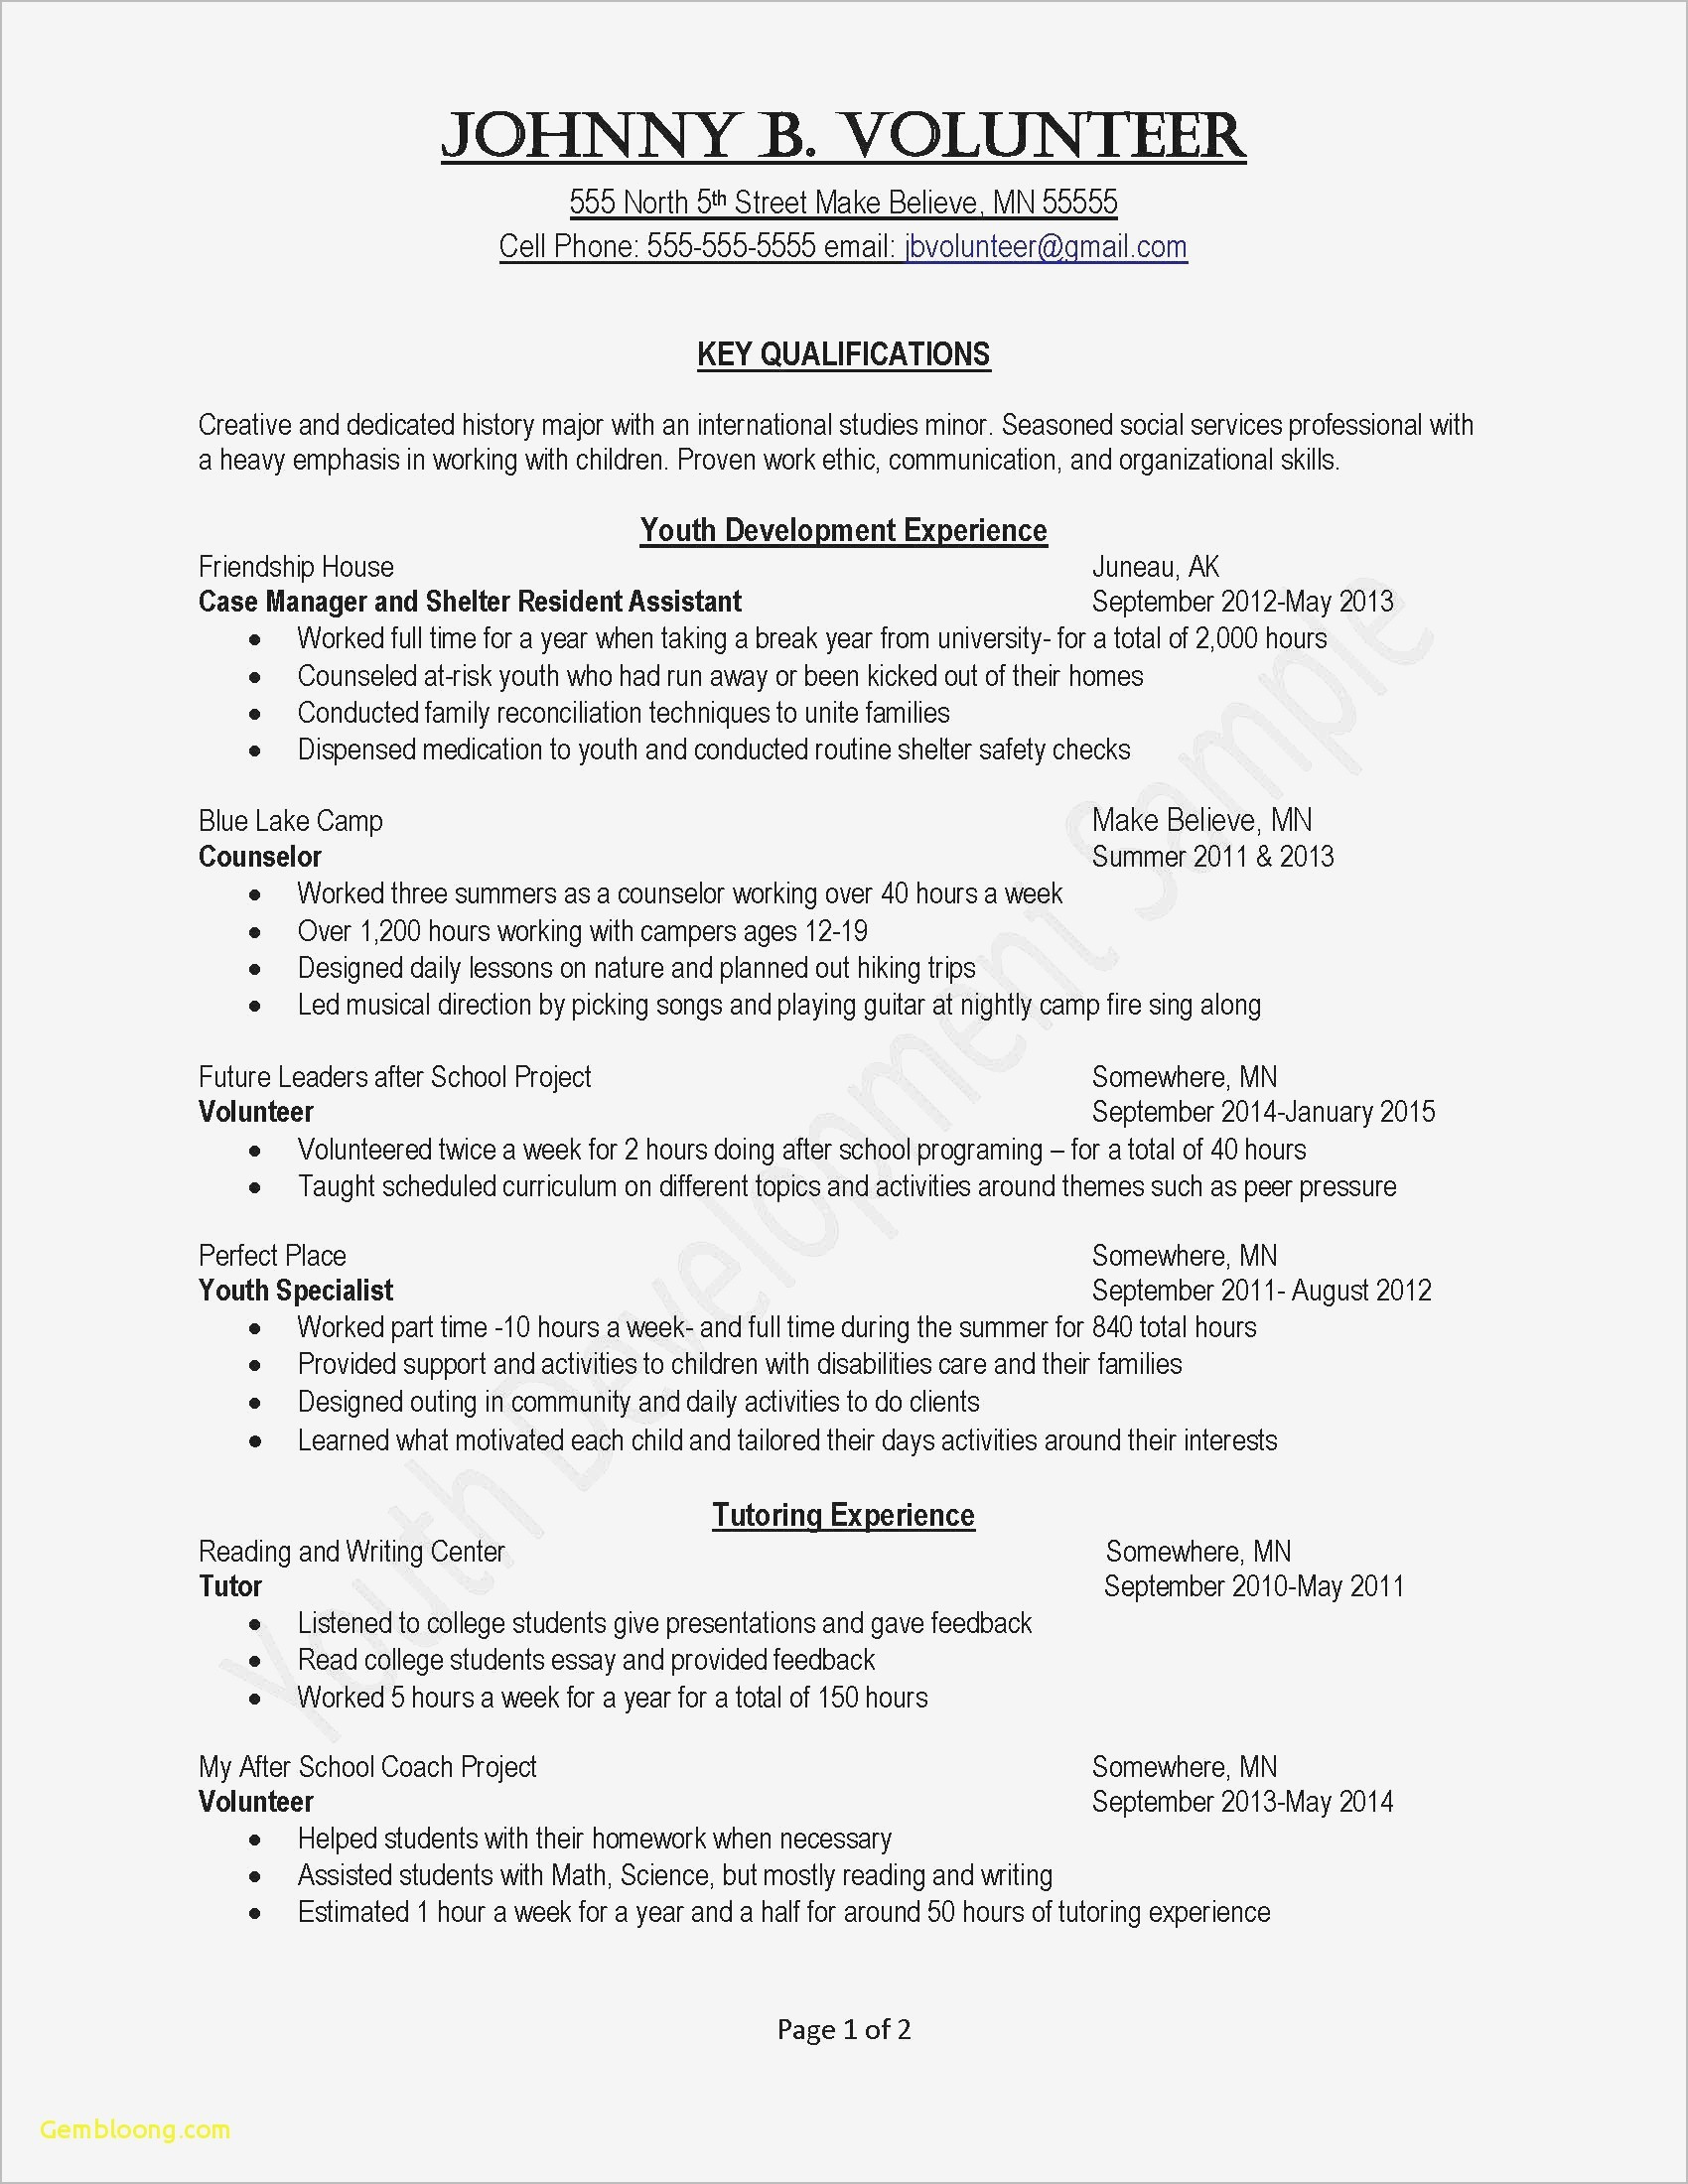 homework letter to parents template Collection-Weekly Letter to Parents Template Valid Simple Cover Letter Templates Job Fer Letter Template Us Copy Od apextechnews 16-b